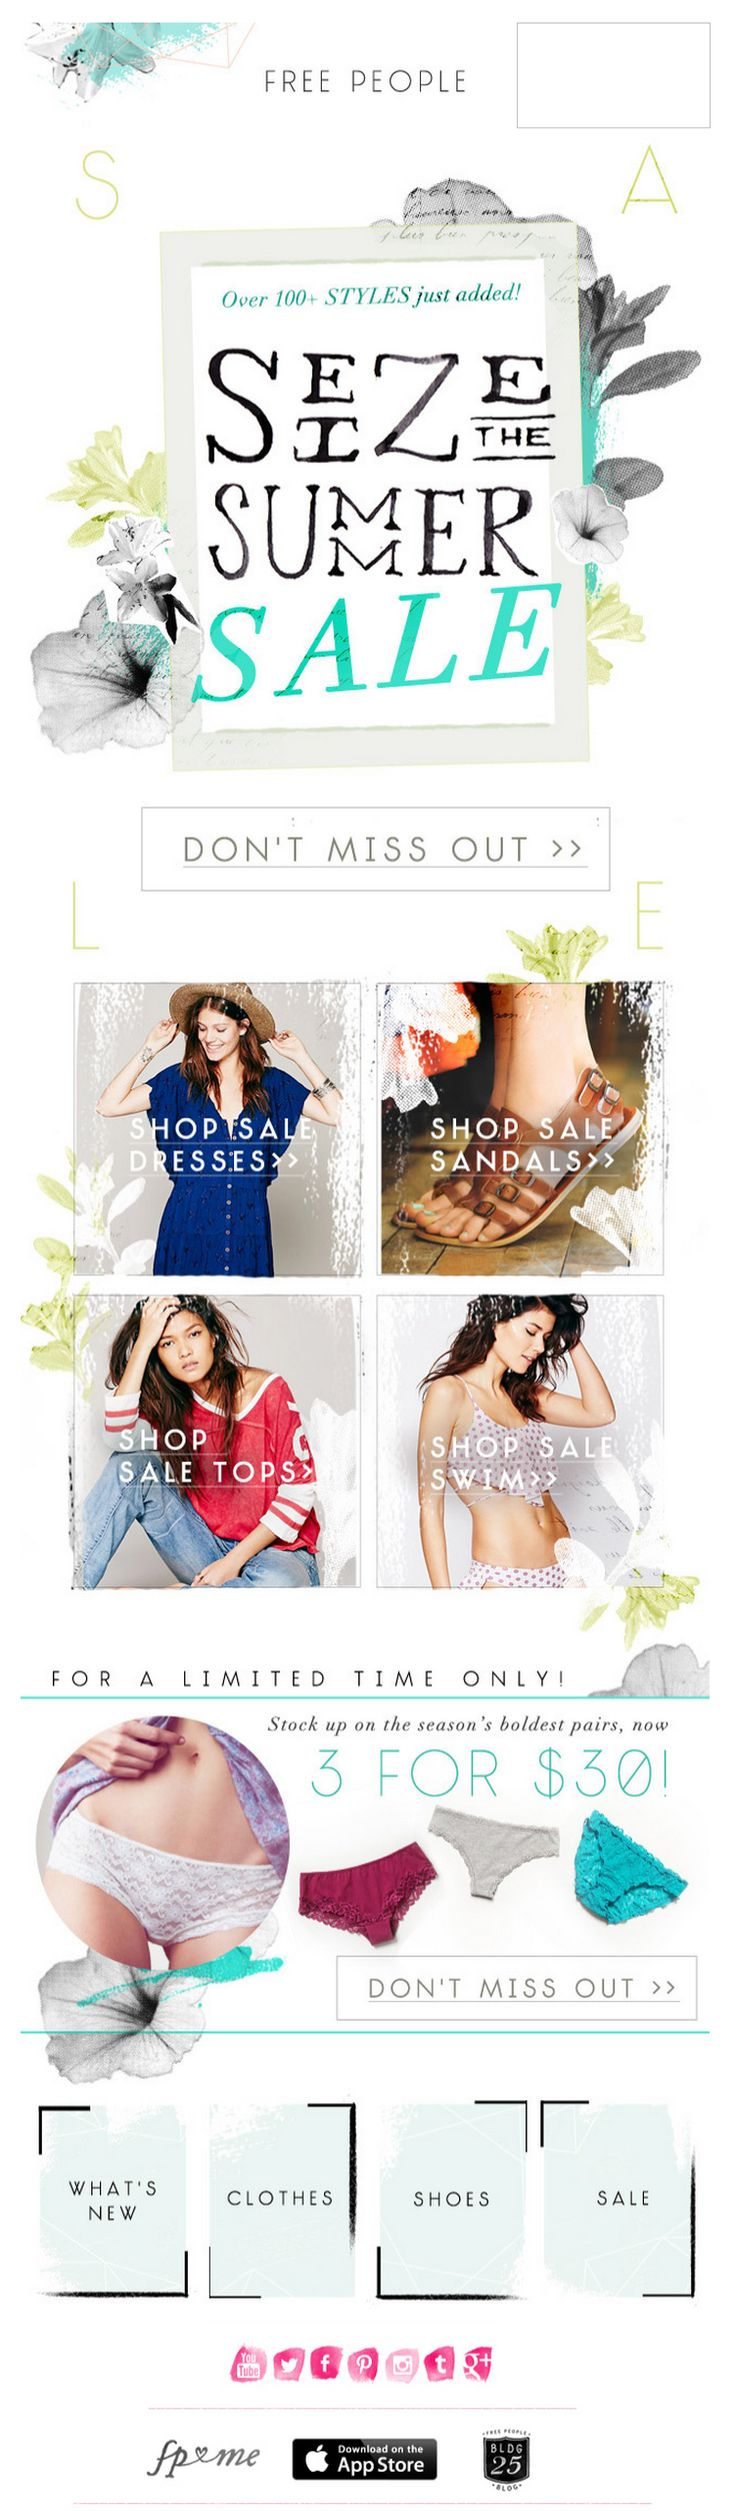 Free People email 2014